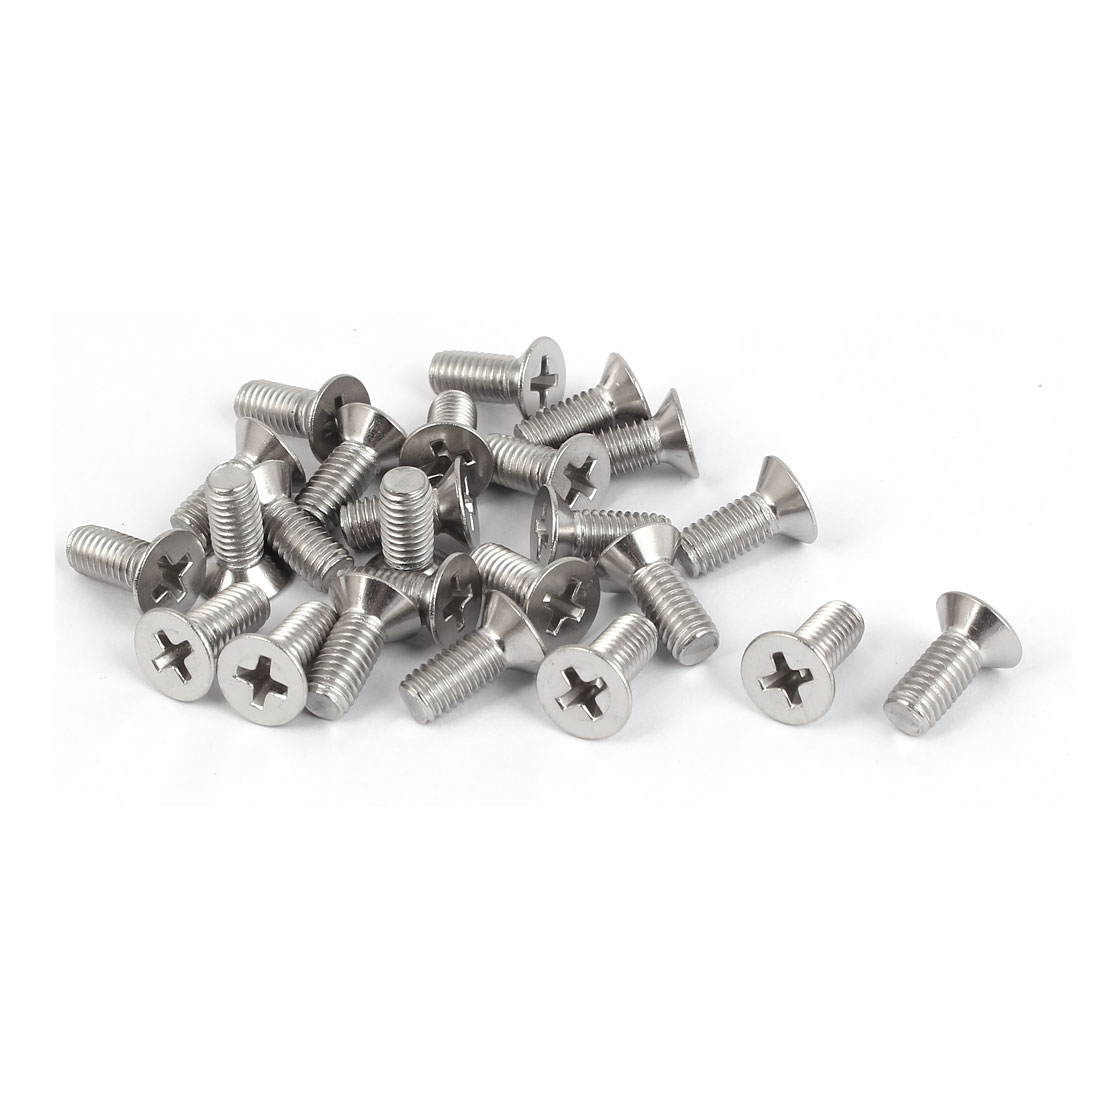 25 Pcs M5x12mm 316 Stainless Steel Countersunk Phillips Machine Screws Bolts